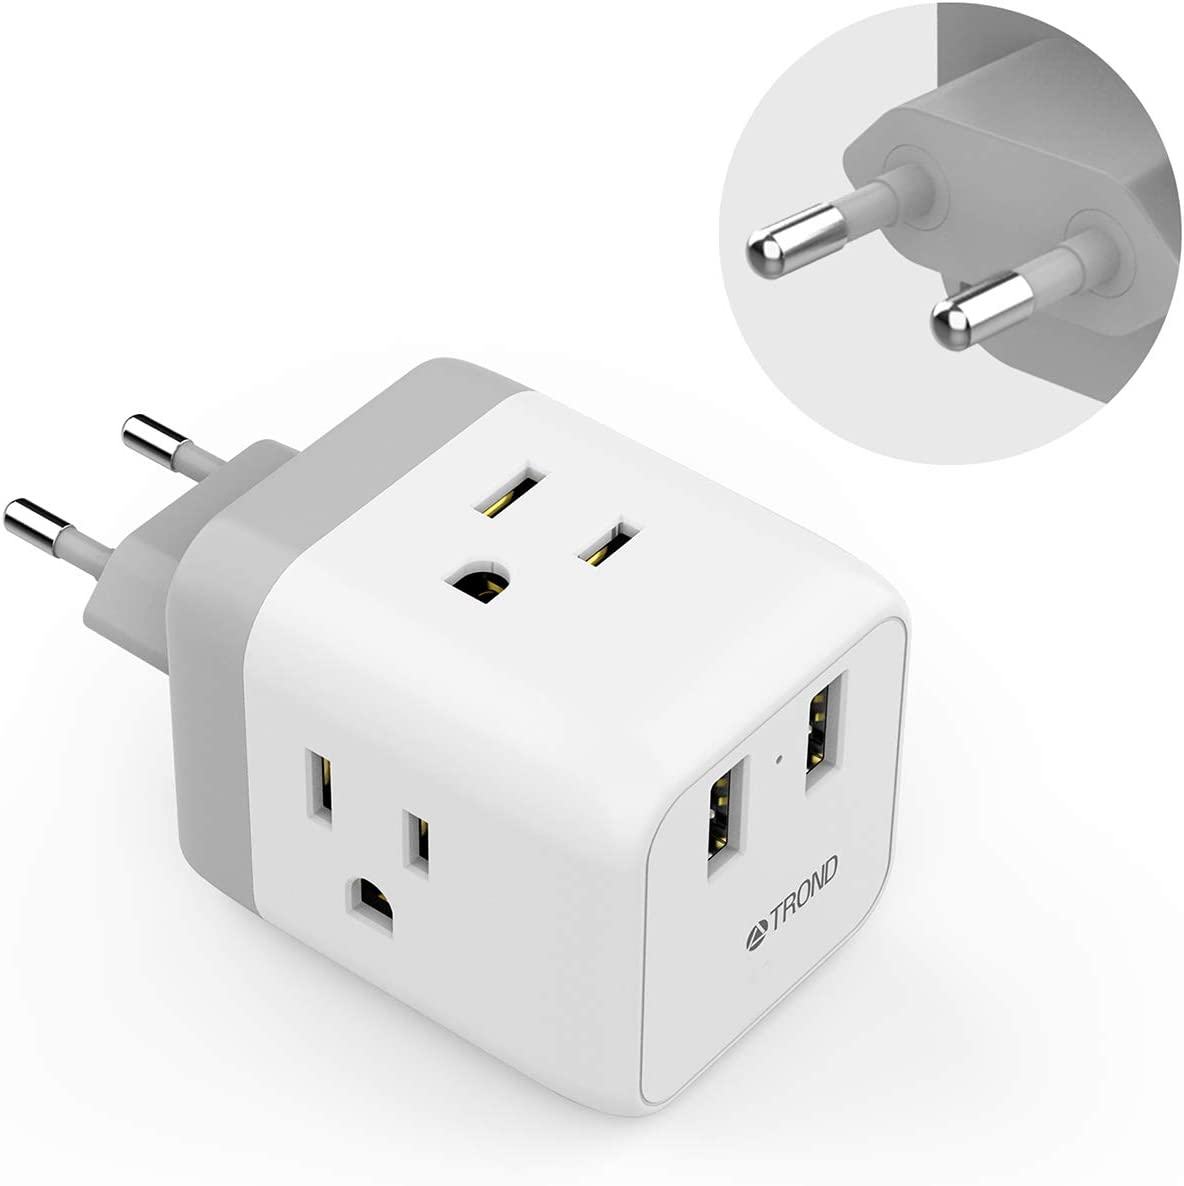 Outlet Plug Adapter black Rling 6-Pack USA Power Converter Travel Adapter to European Adapter American